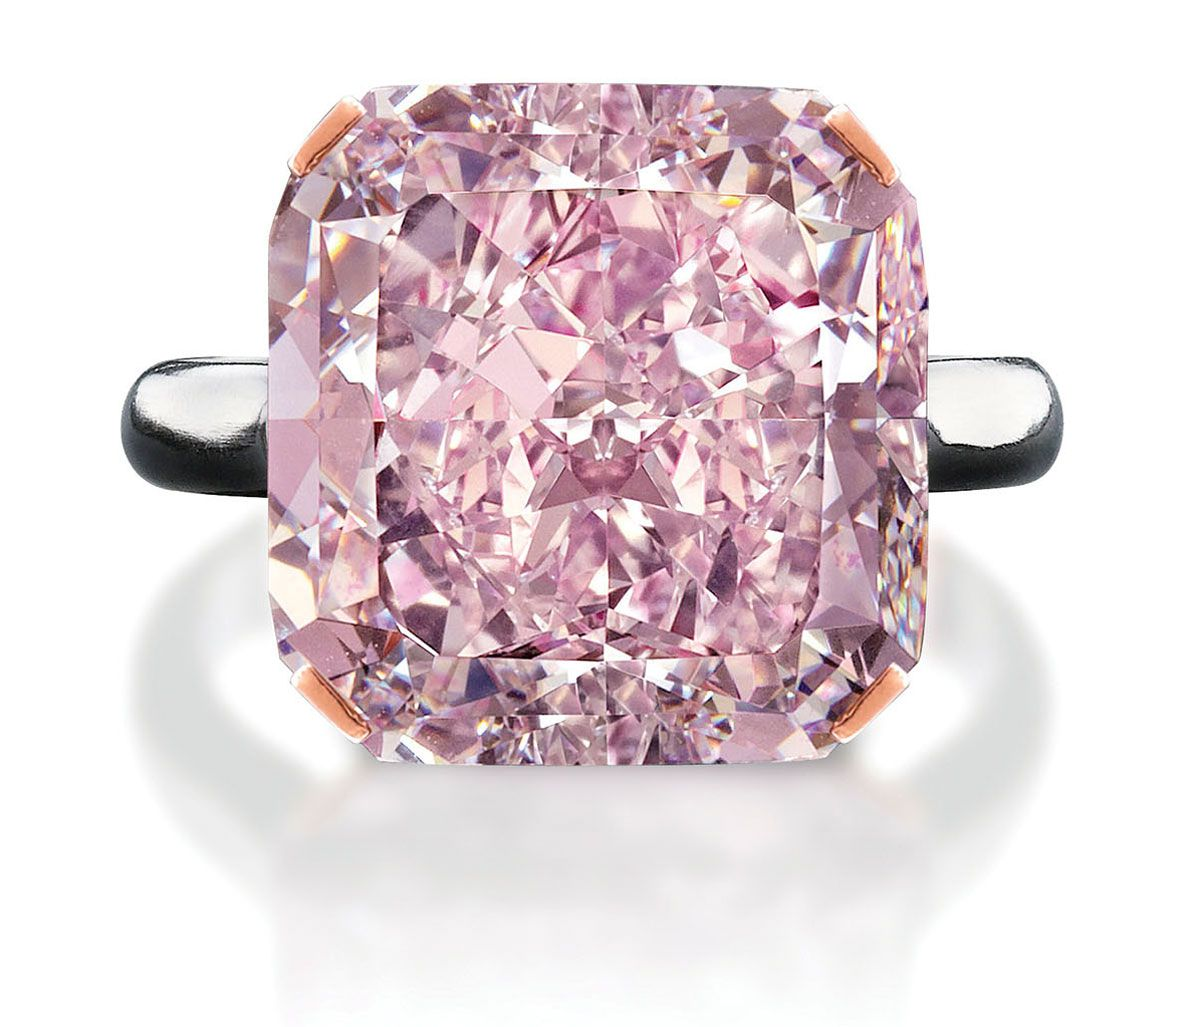 10 carat light purplish pink diamond. This 10-carat gem was cut and ...